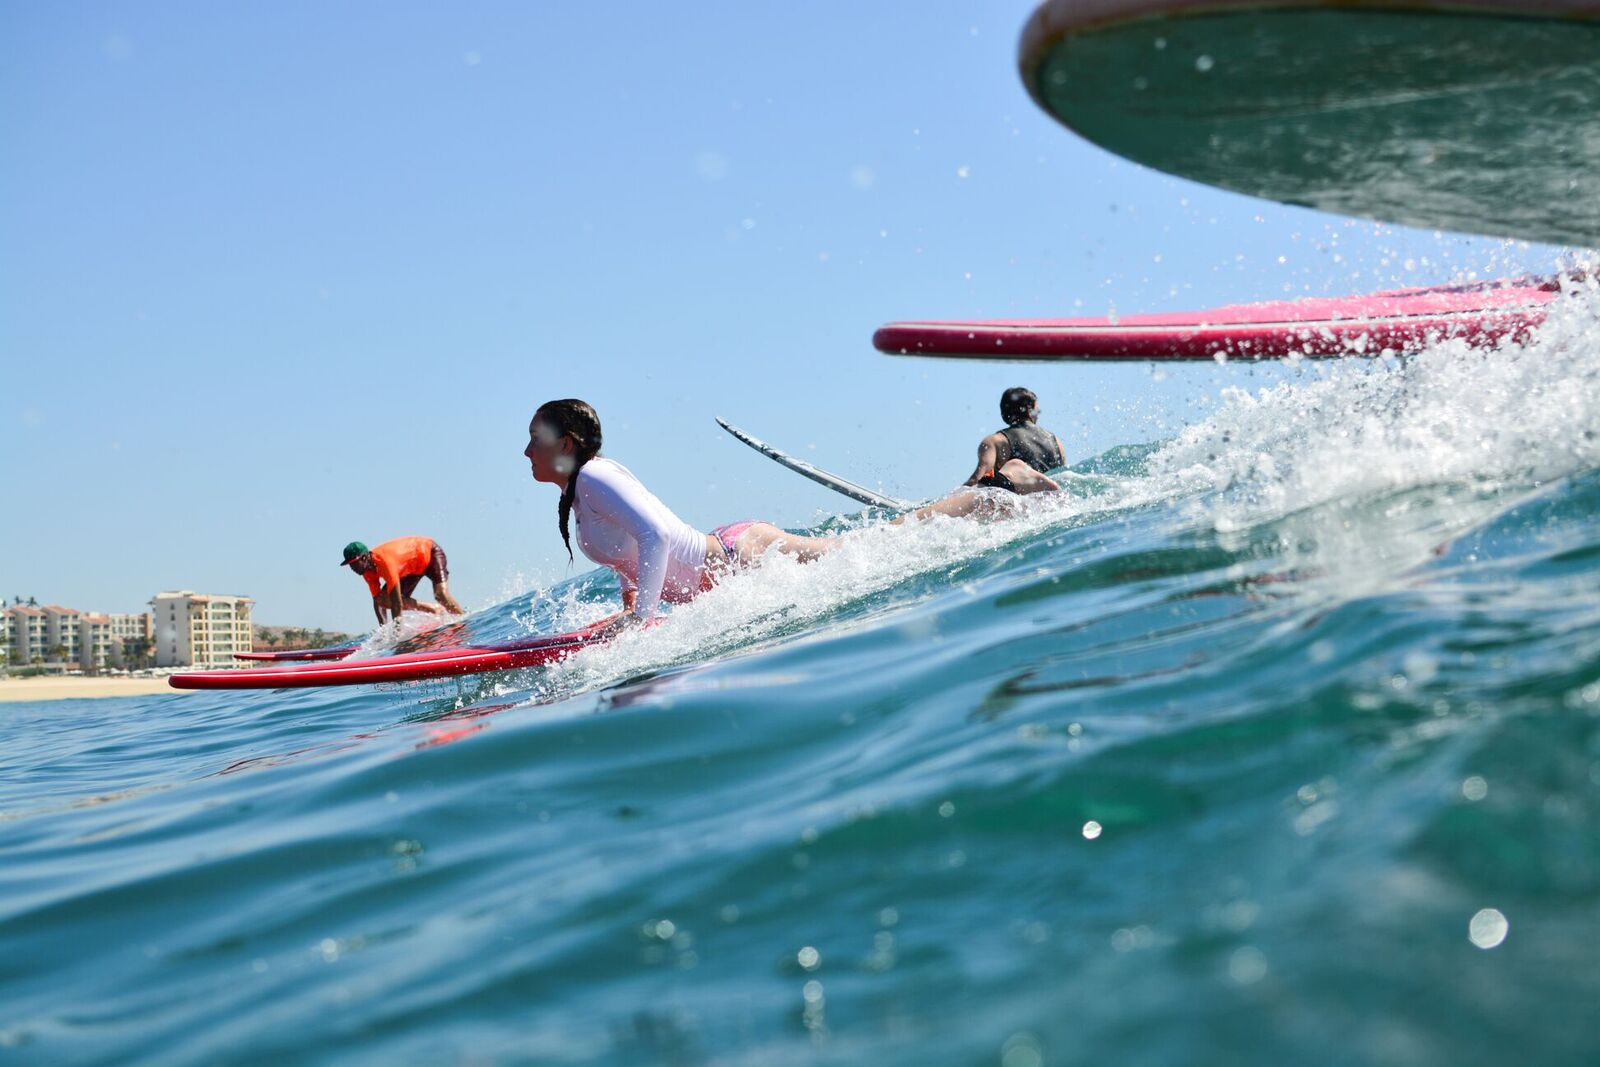 Private Los Cabos Surfing Lesson at Costa Azul in Mexico (summer)